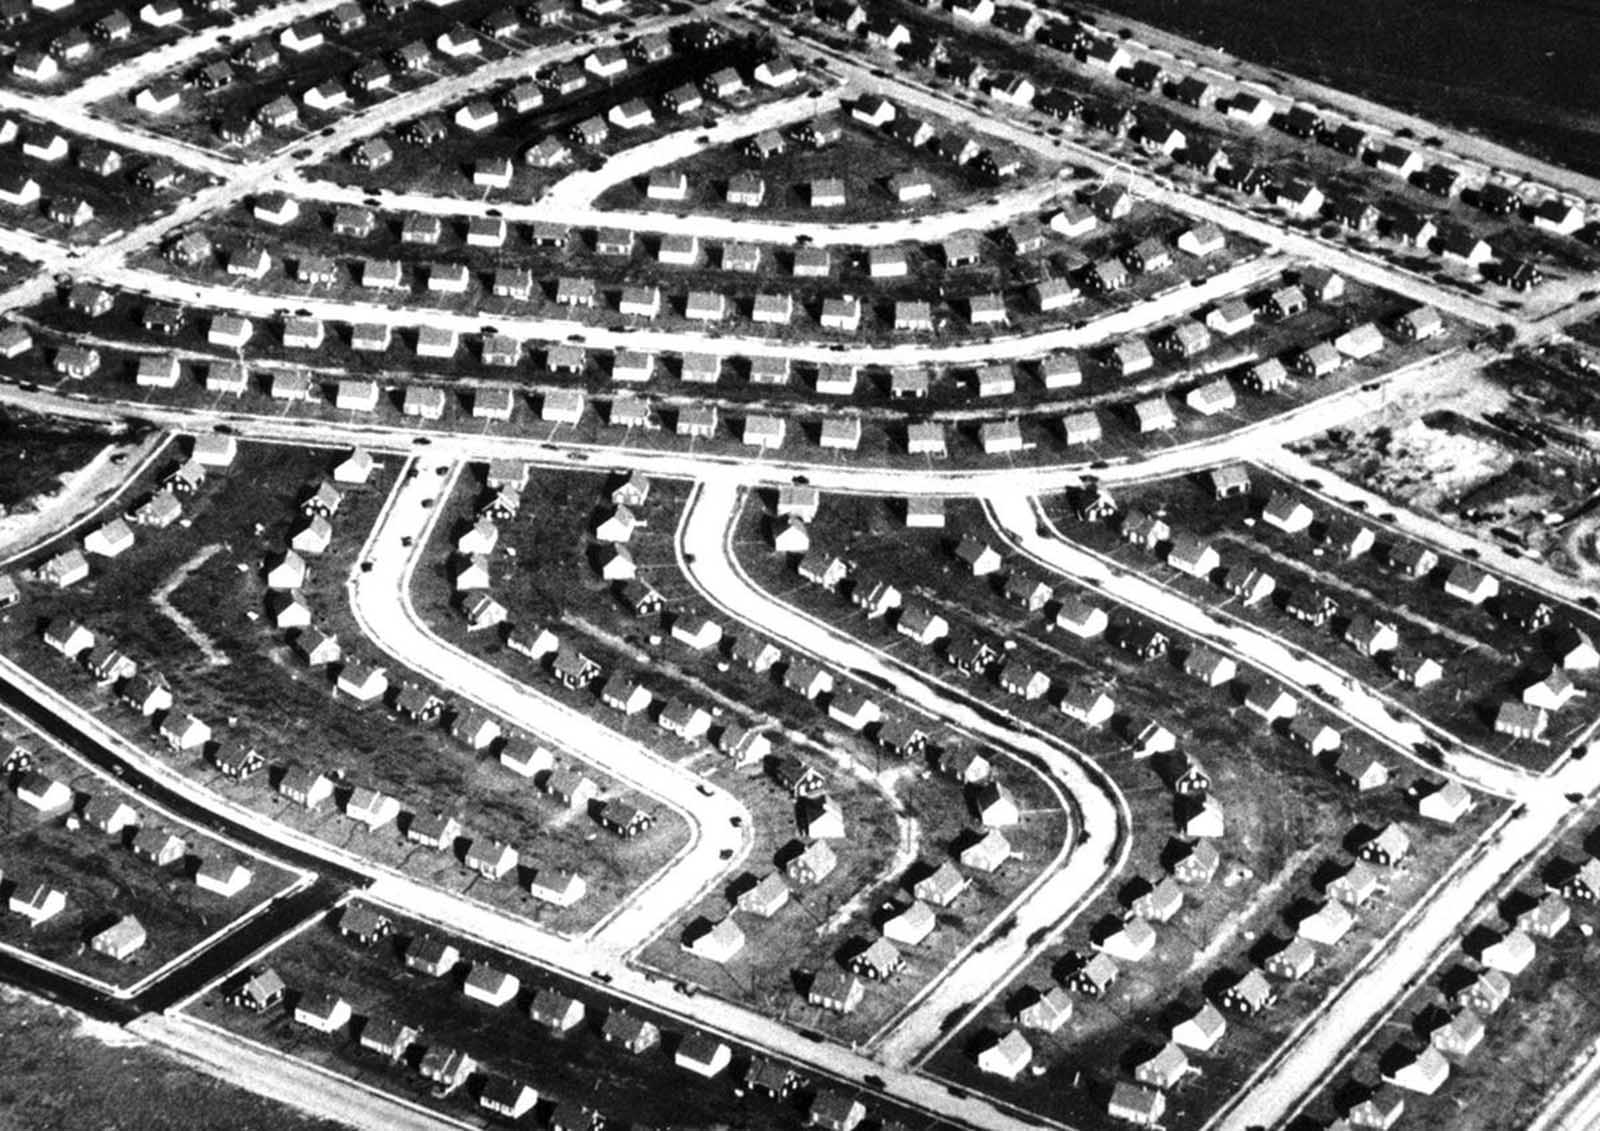 This aerial file photo shows a portion of Levittown, New York, in 1948 shortly after the mass-produced suburb was completed on Long Island farmland in New York. This prototypical suburban community was the first of many mass-produced housing developments that went up for soldiers coming home from World War II. It also became a symbol of postwar suburbia in the U.S.